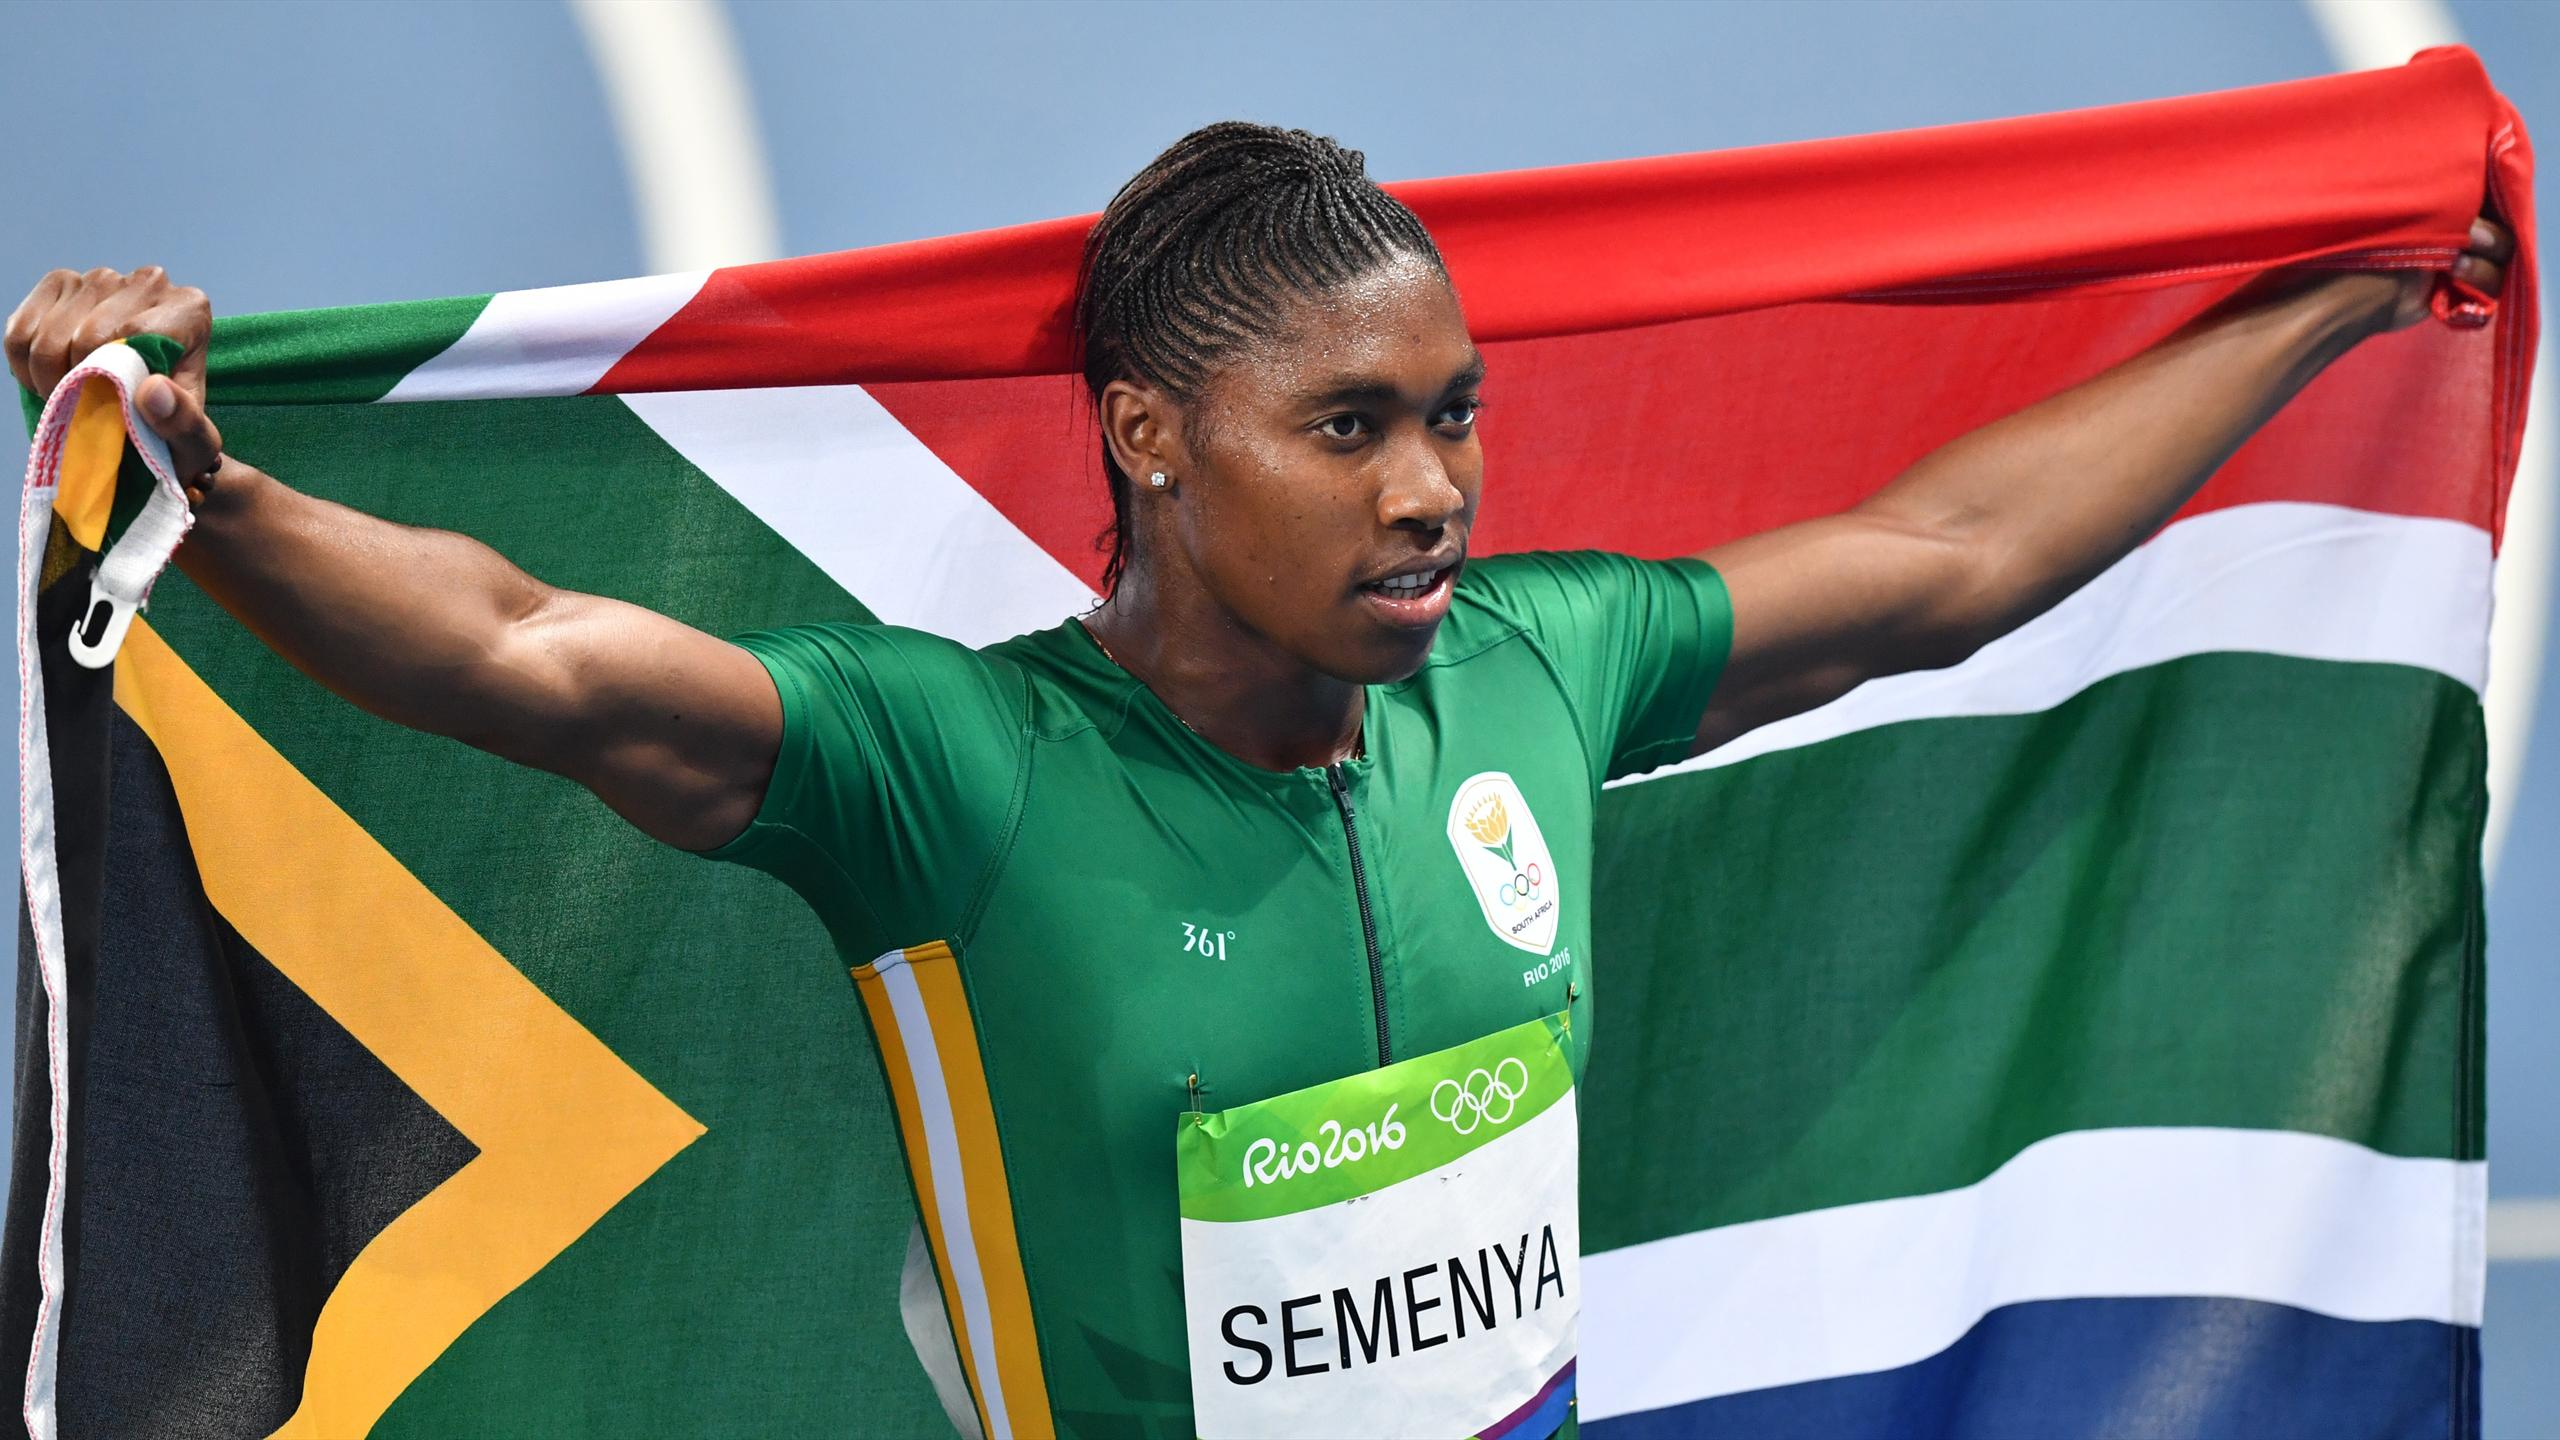 South Africa's Caster Semenya holds her national flag as she celebrates winning the Women's 800m Final during the athletics event at the Rio 2016 Olympic Games